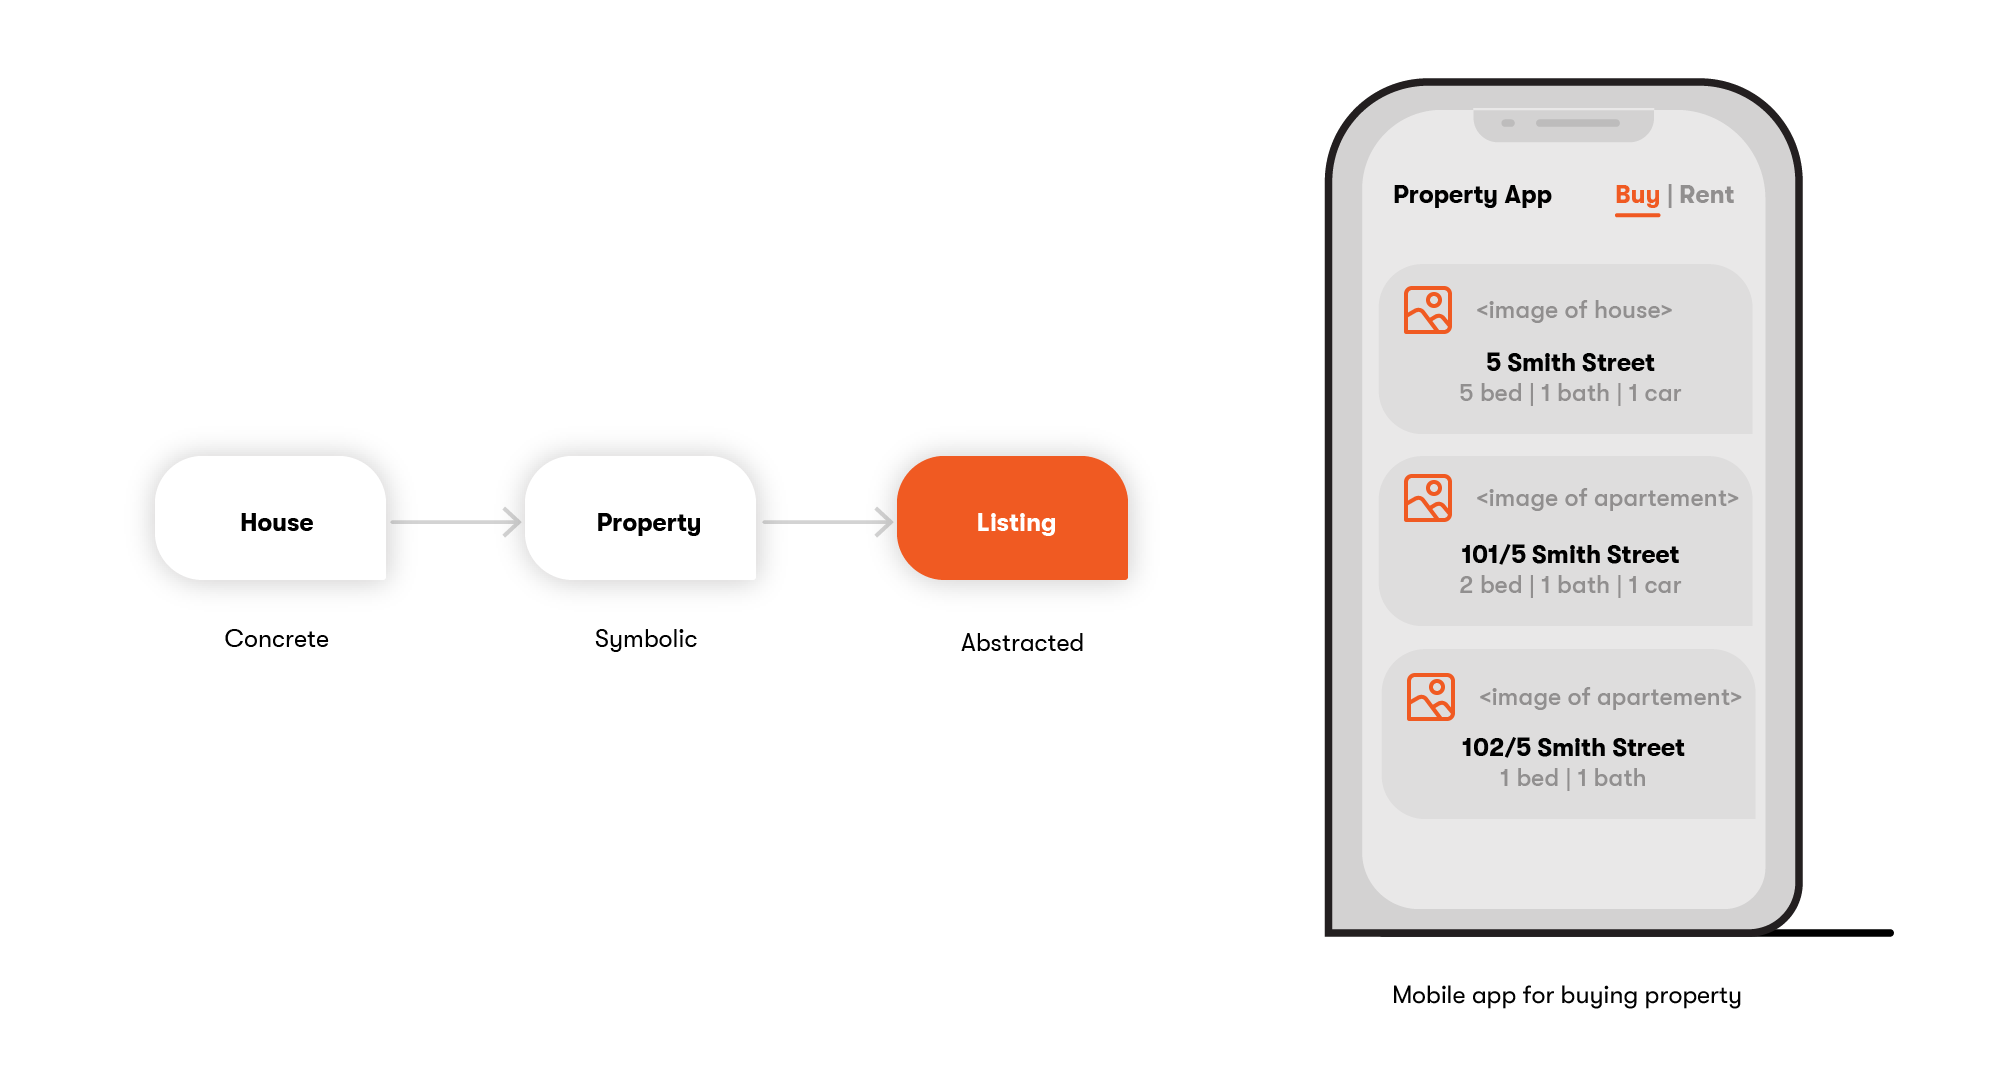 Figure 1: Mobile app for buying property